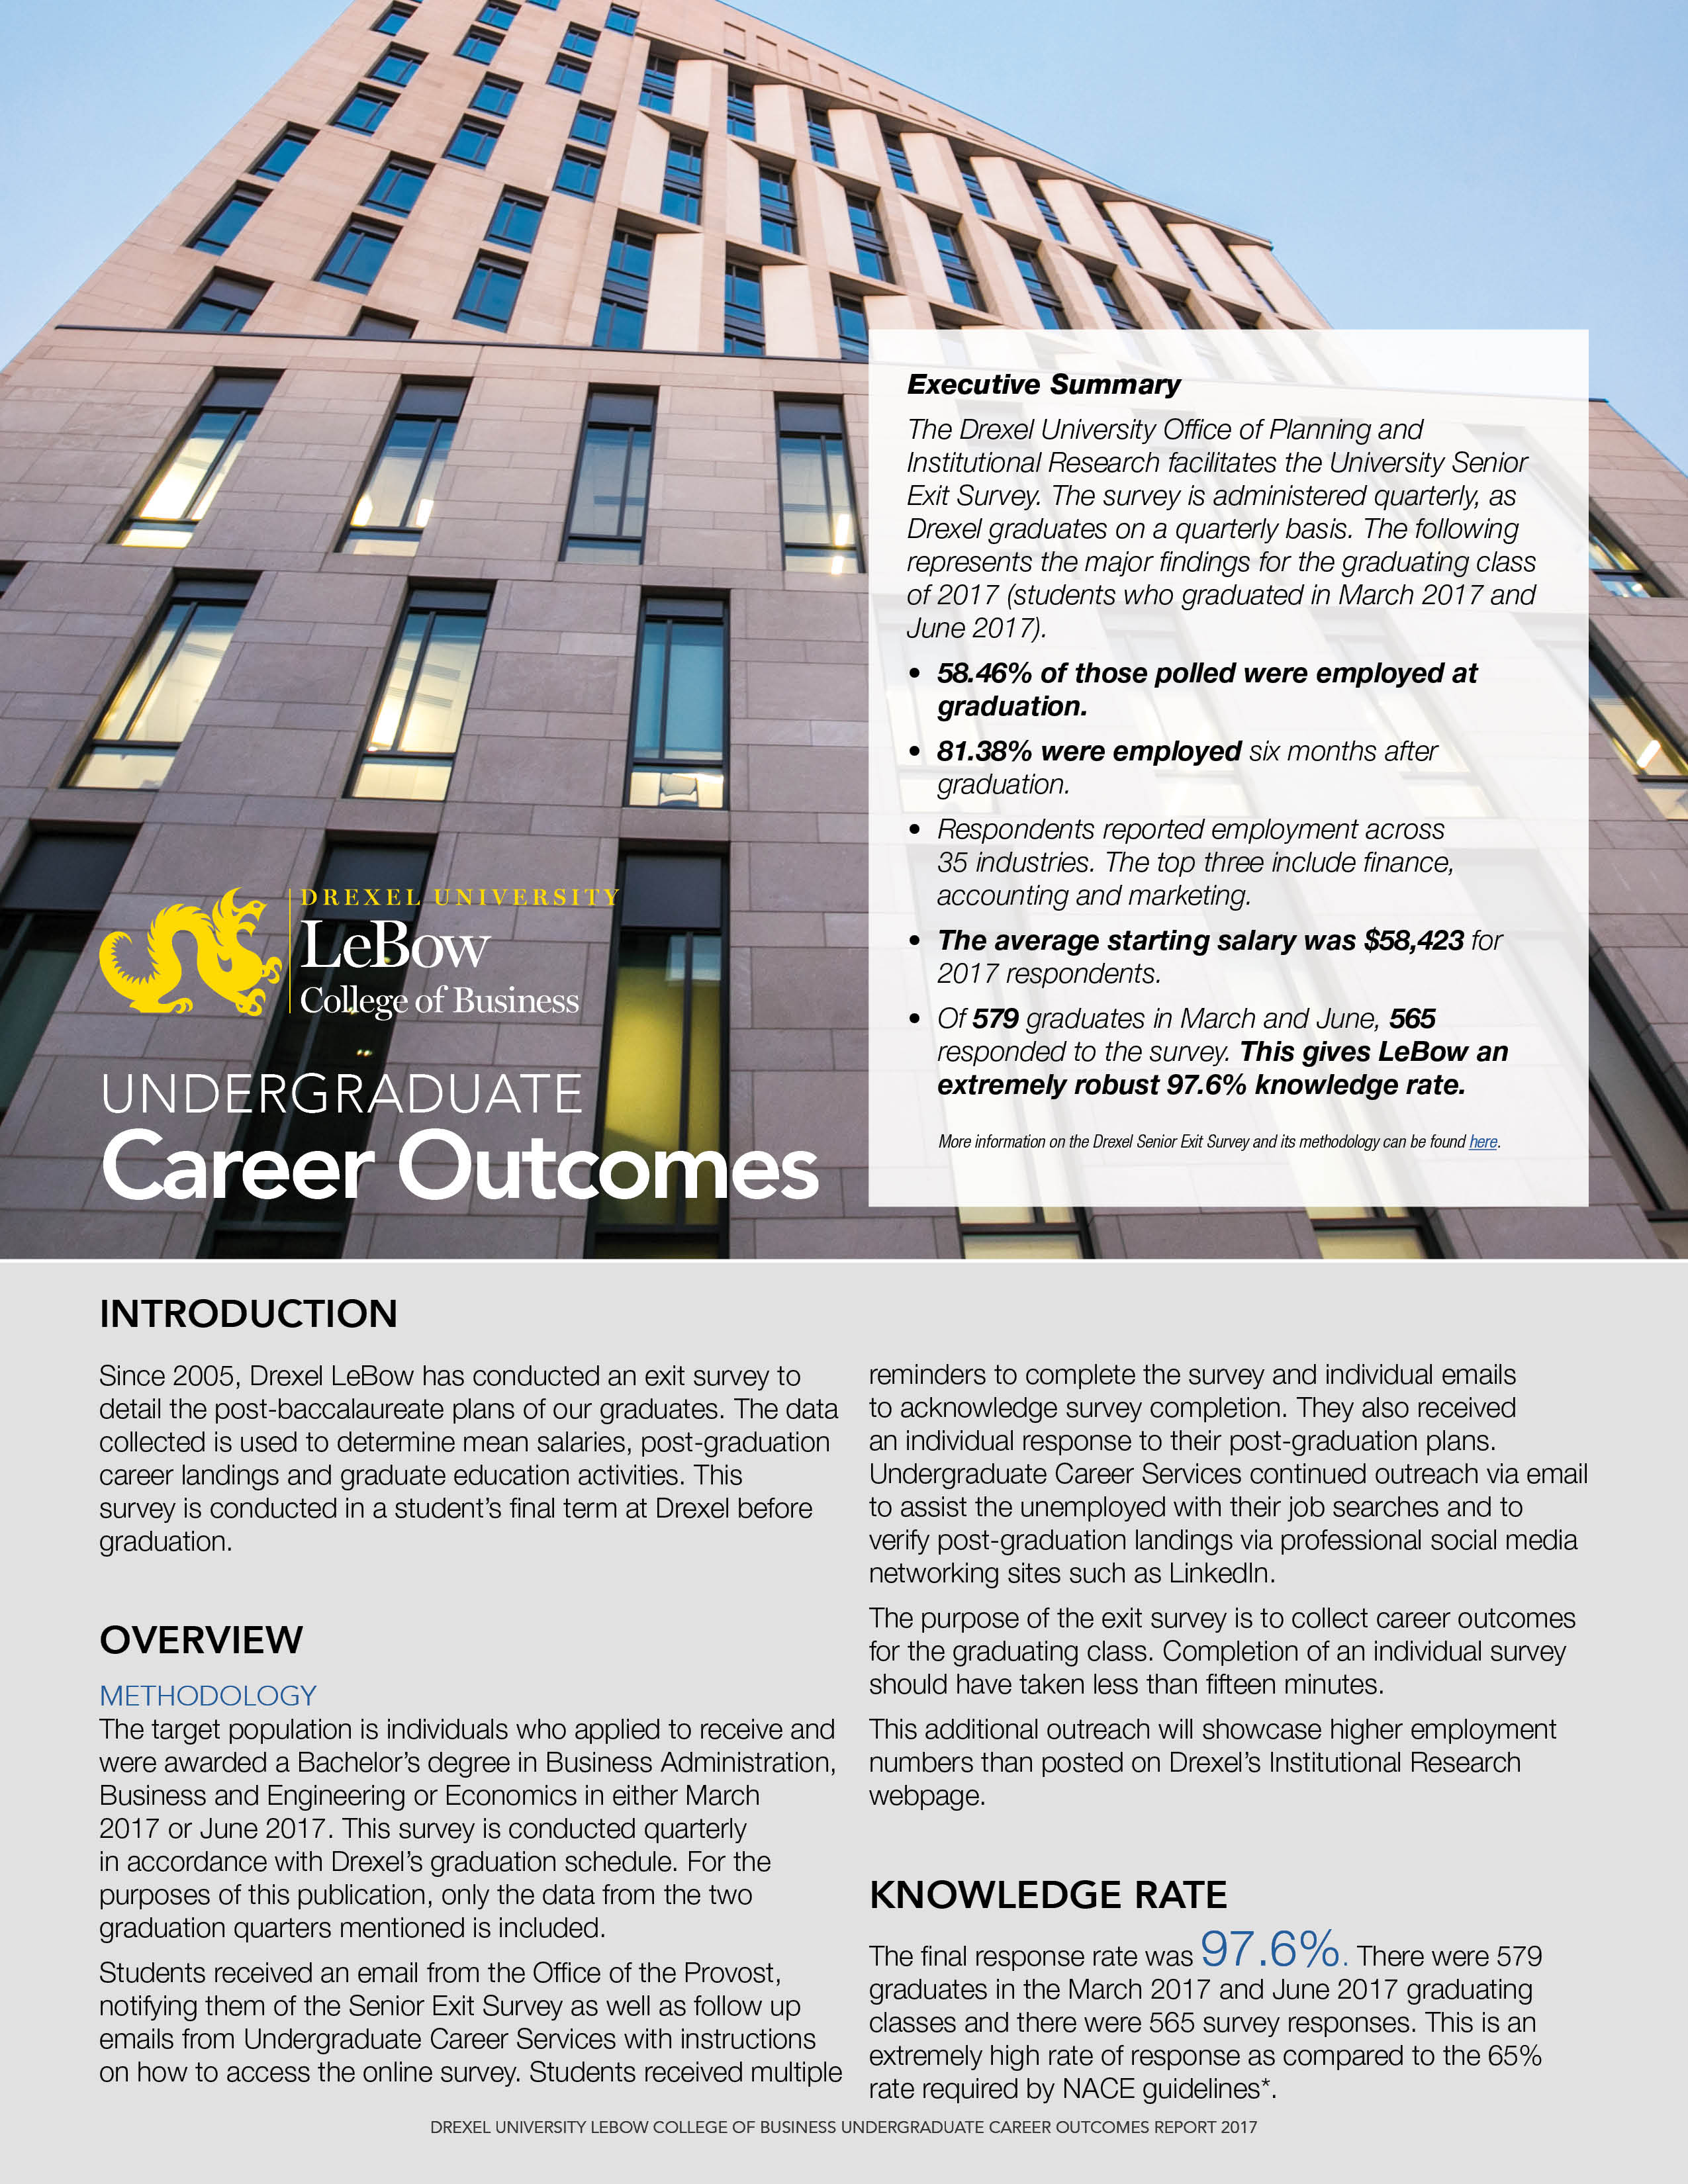 Career Outcomes 2017 Report